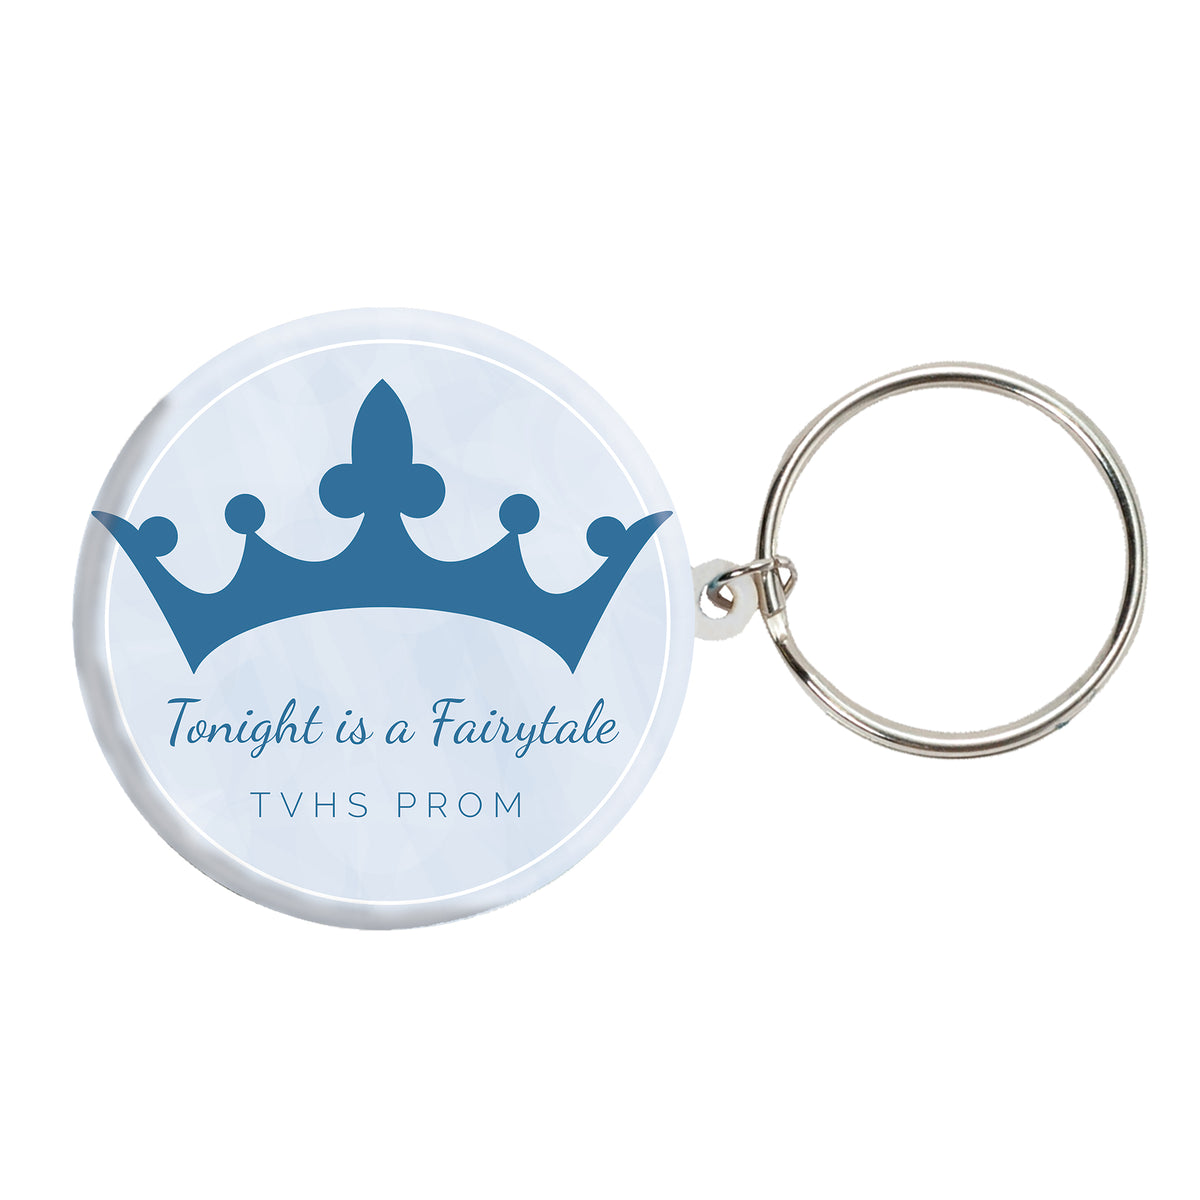 Tonight is a Fairytale Personalized Key Chain